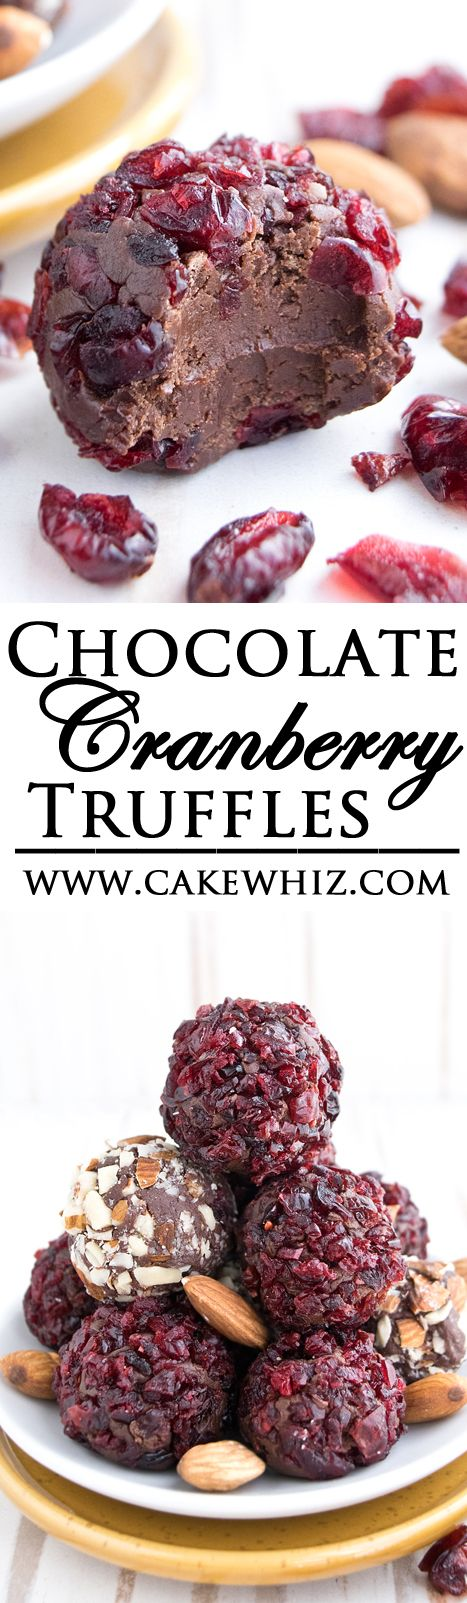 These fudgy CHOCOLATE CRANBERRY TRUFFLES are really simple to make with just 3 ingredients! Great for snacking or gifting during the Christmas holidays! Easiest recipe ever! {Ad} From cakewhiz.com